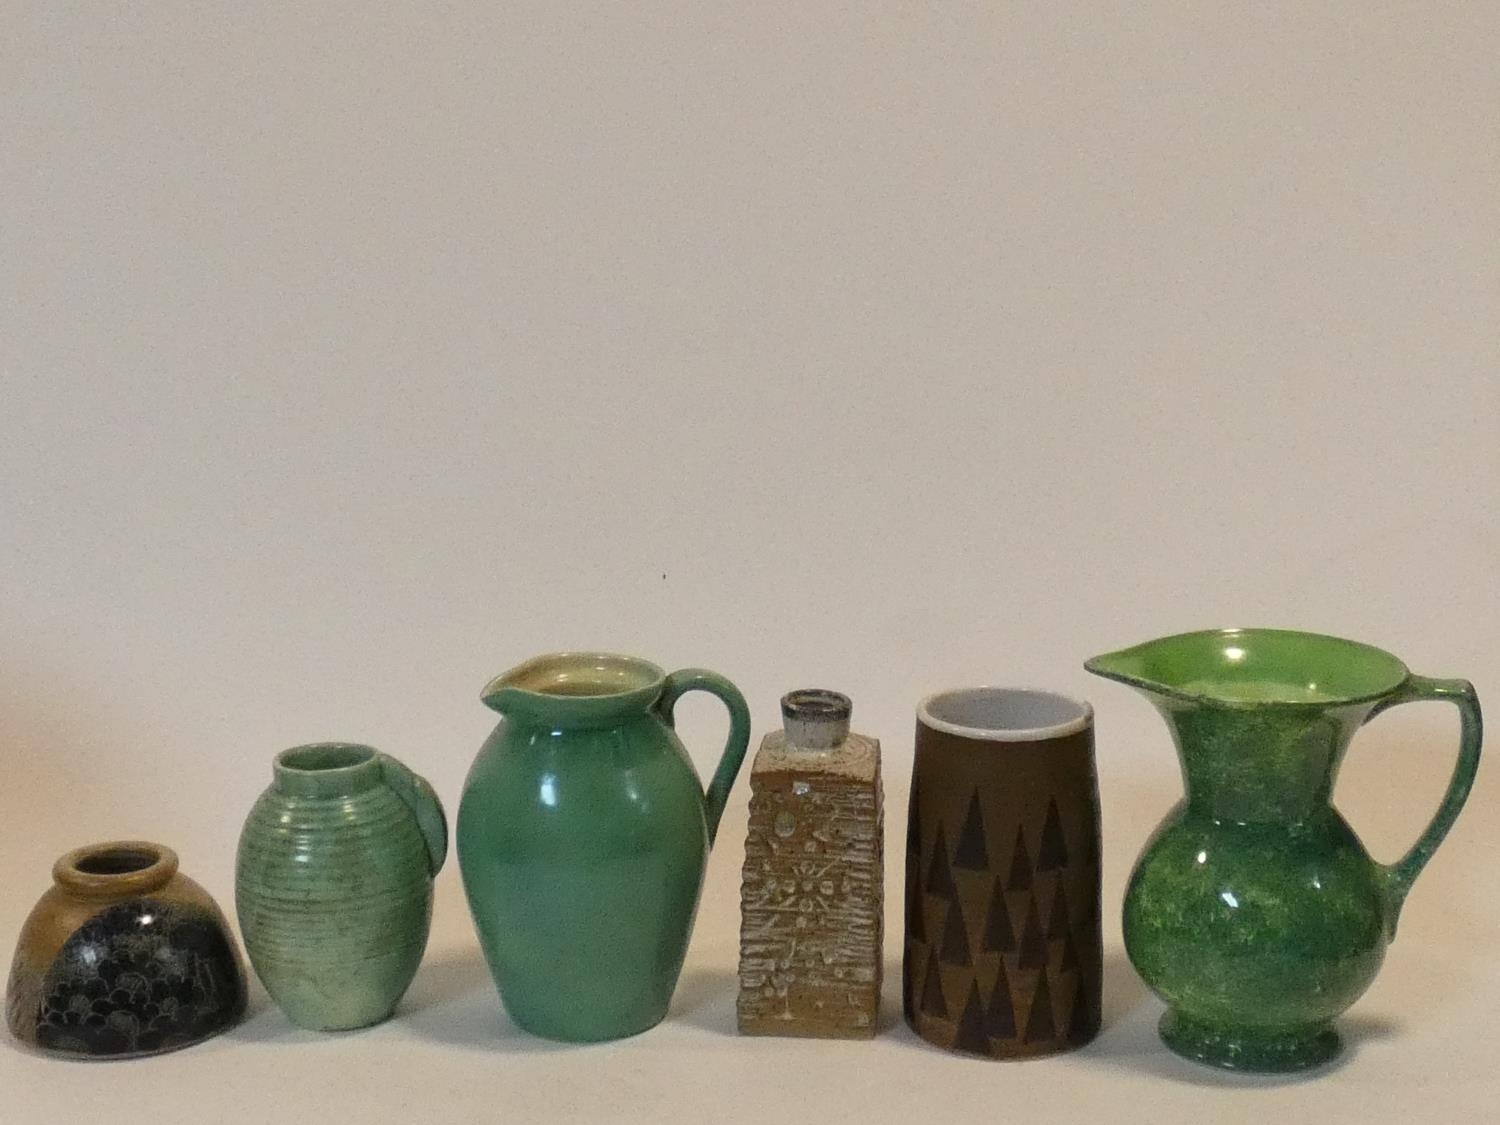 A miscellaneous collection of various Art Pottery jugs and vases. H.20cm (tallest) - Image 2 of 26